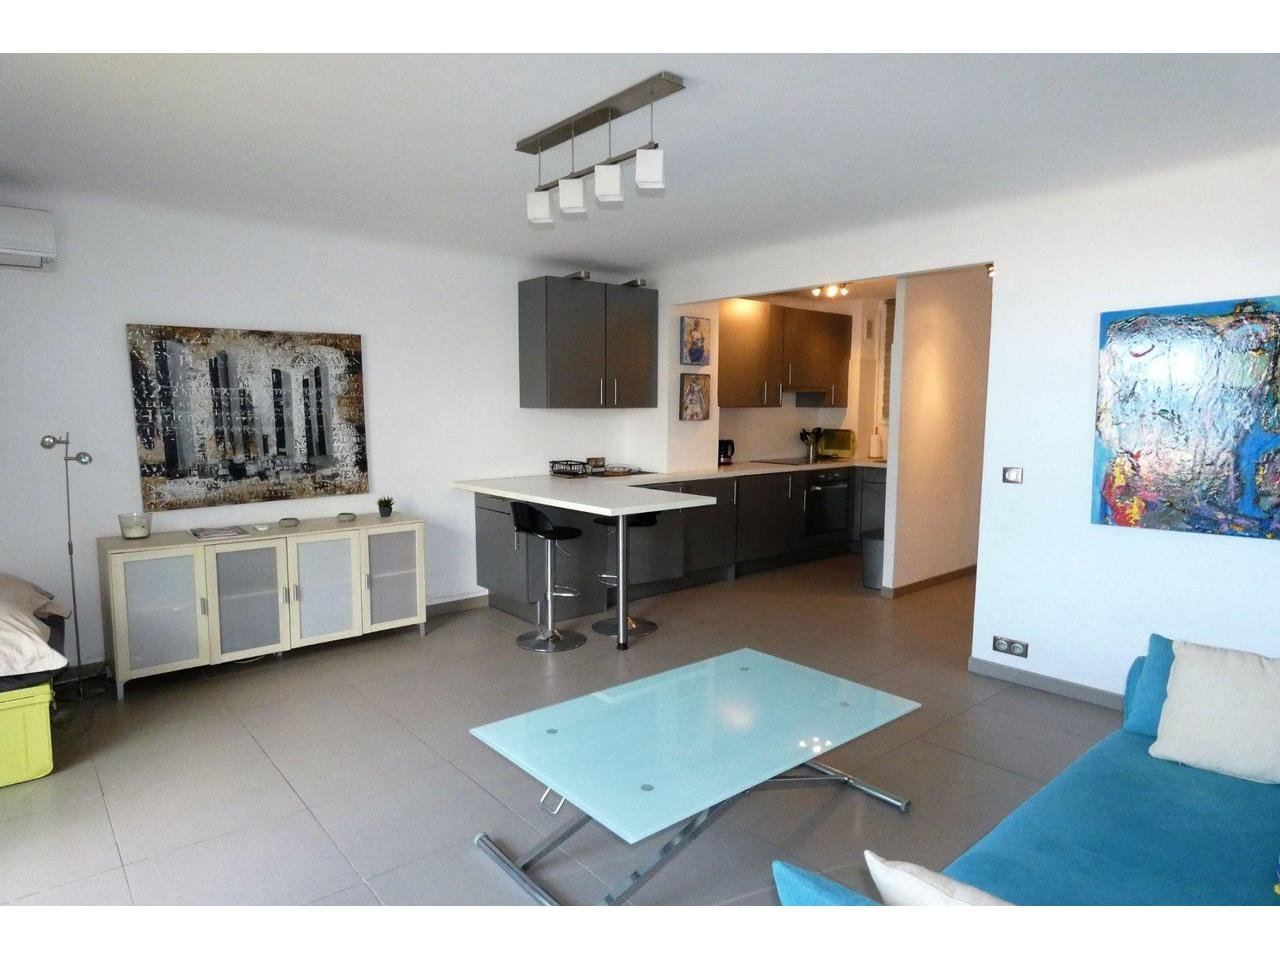 Appartement  1 Rooms 30.5m2  for sale   299900 €